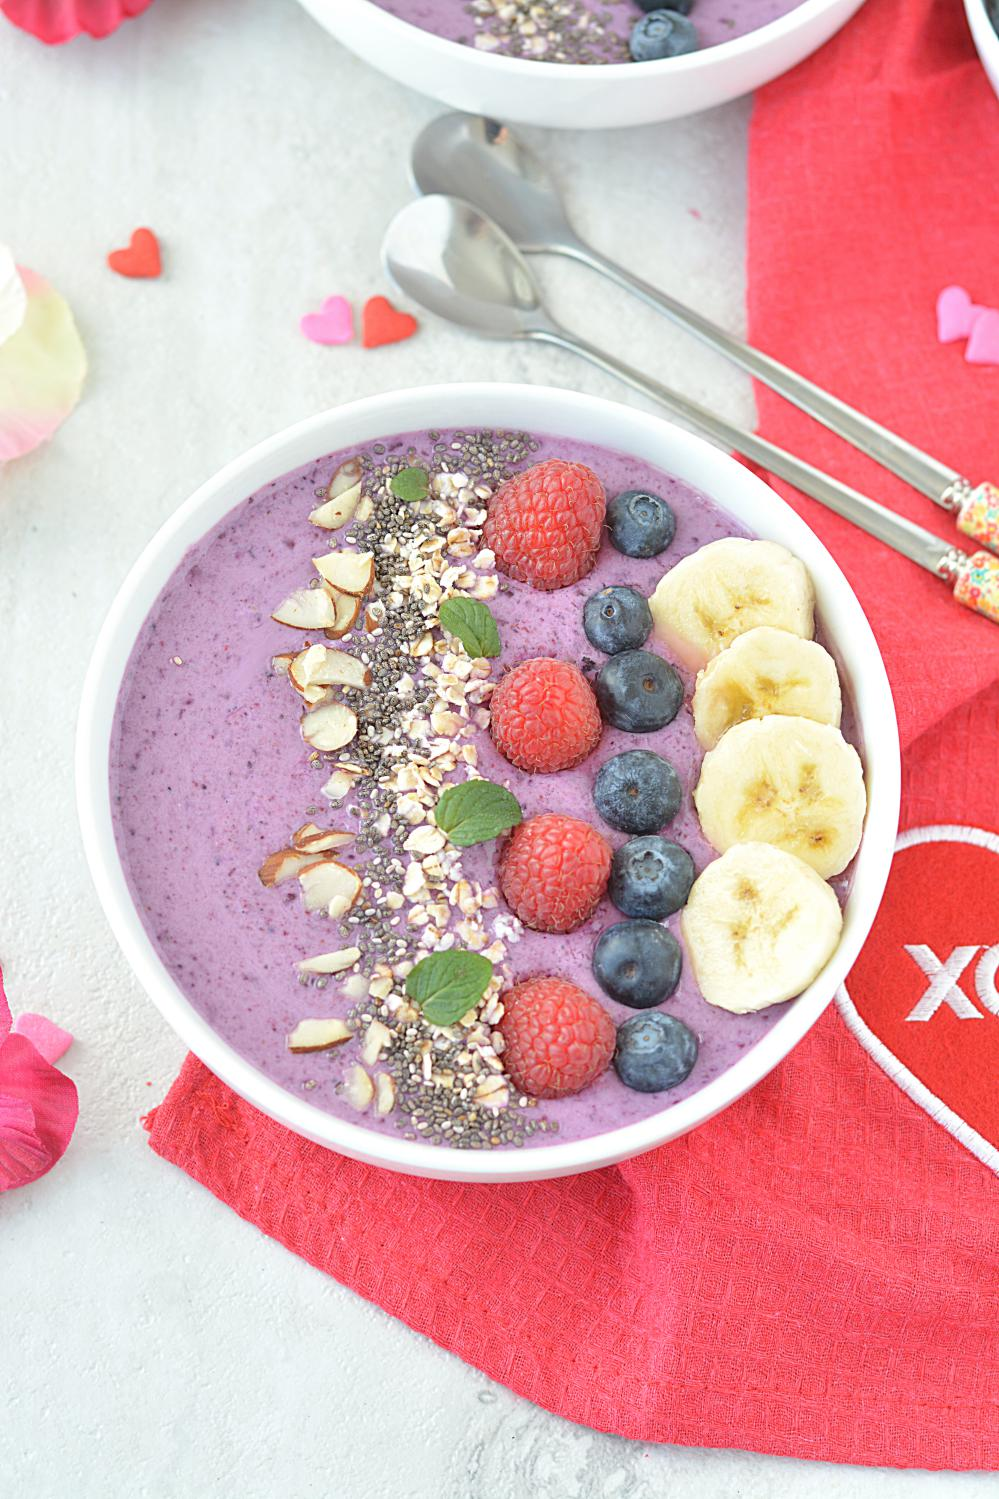 Healthy Mixed berry Smoothie Bowl